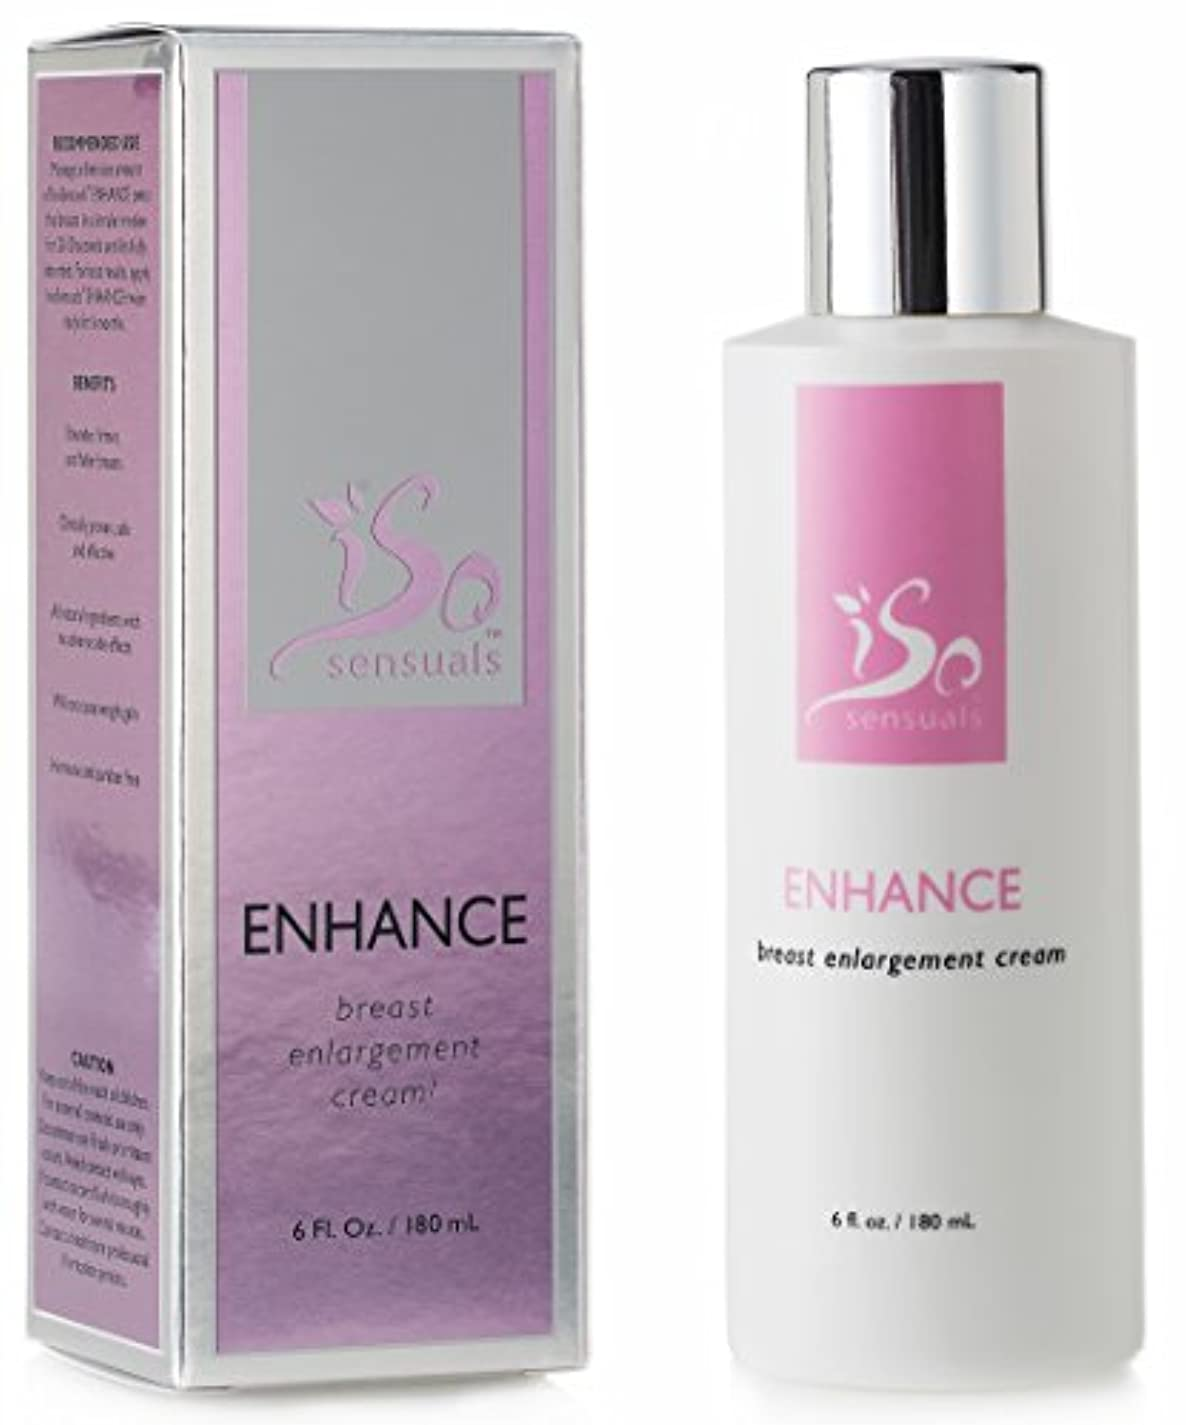 IsoSensuals ENHANCE - Breast Enlargement Cream - 1 Bottle